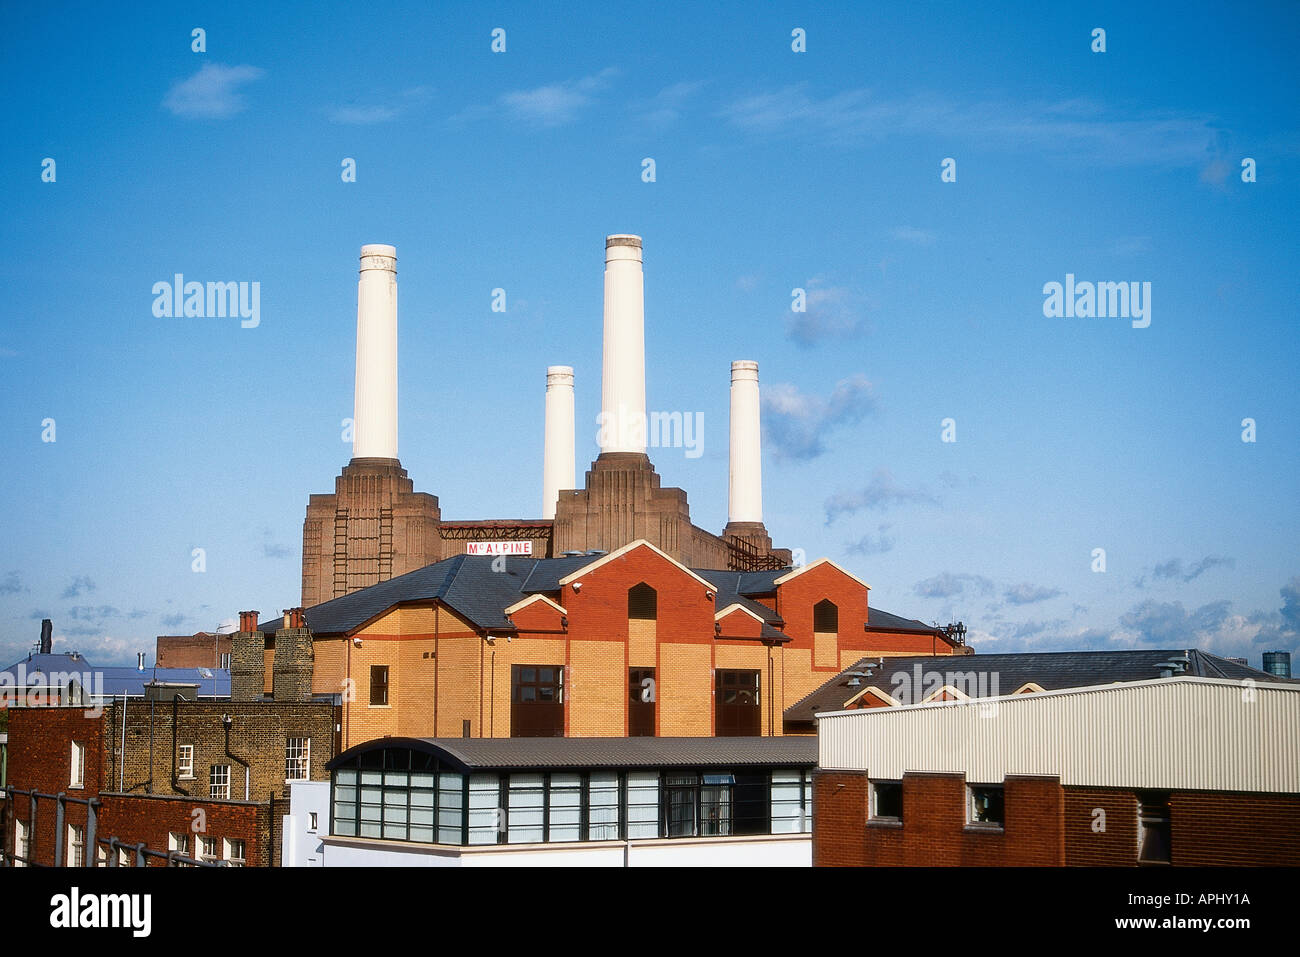 White chimneys dominate the sky line above Battersea Power Station London England designed by Sir Giles Gilbert Scott - Stock Image